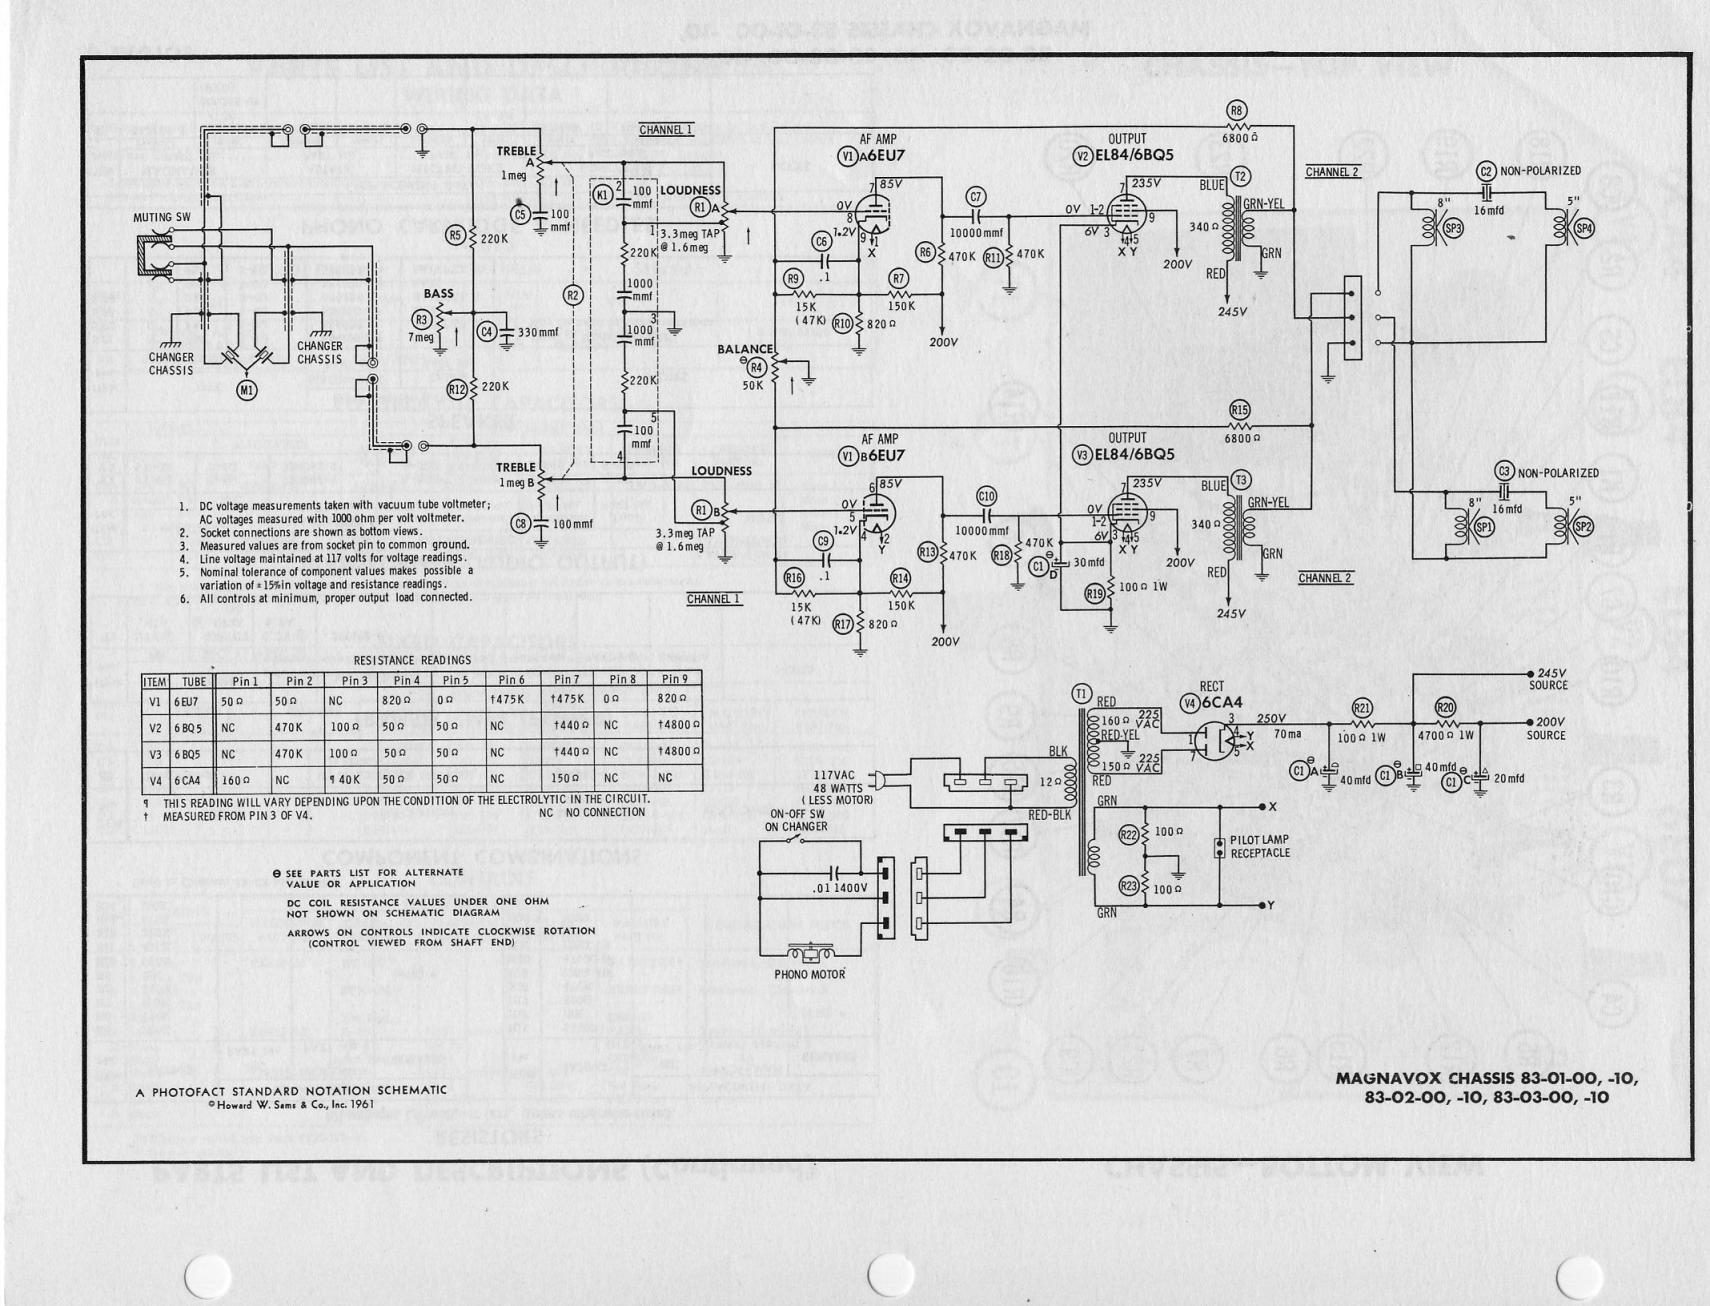 Here's the Sam's schematic of the 6EU7 input with a 6CA4